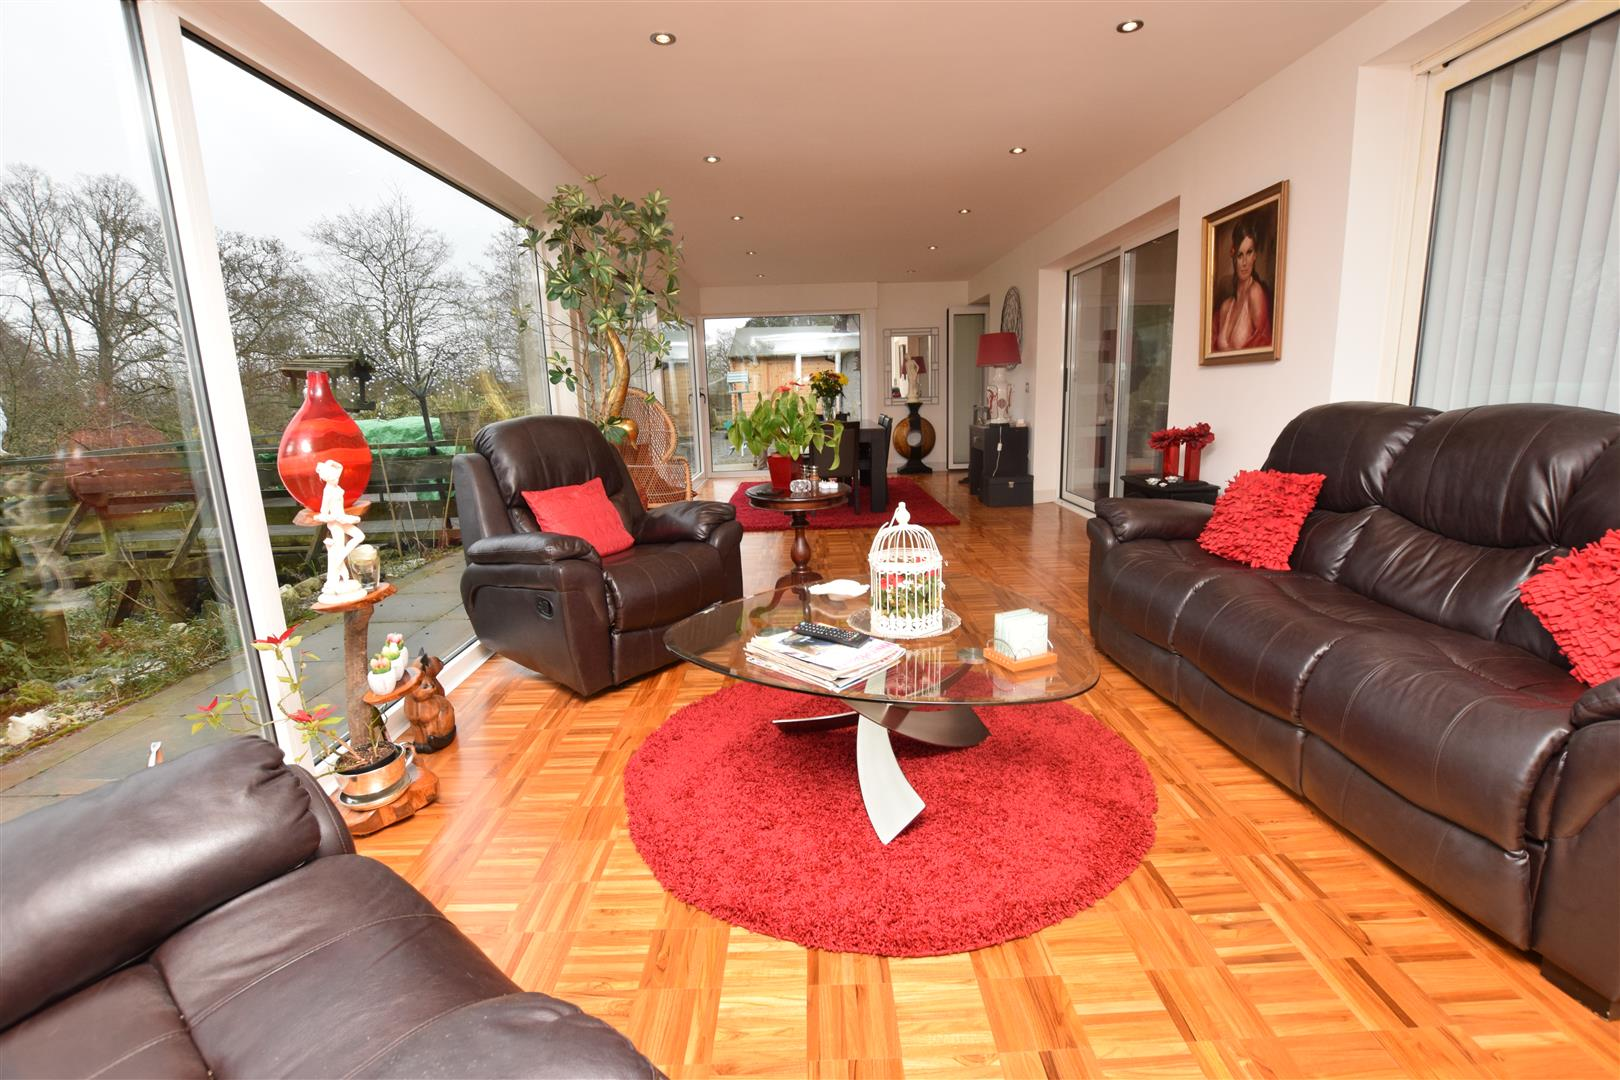 Muthill Road, Crieff, Perthshire, PH7 4HQ, UK